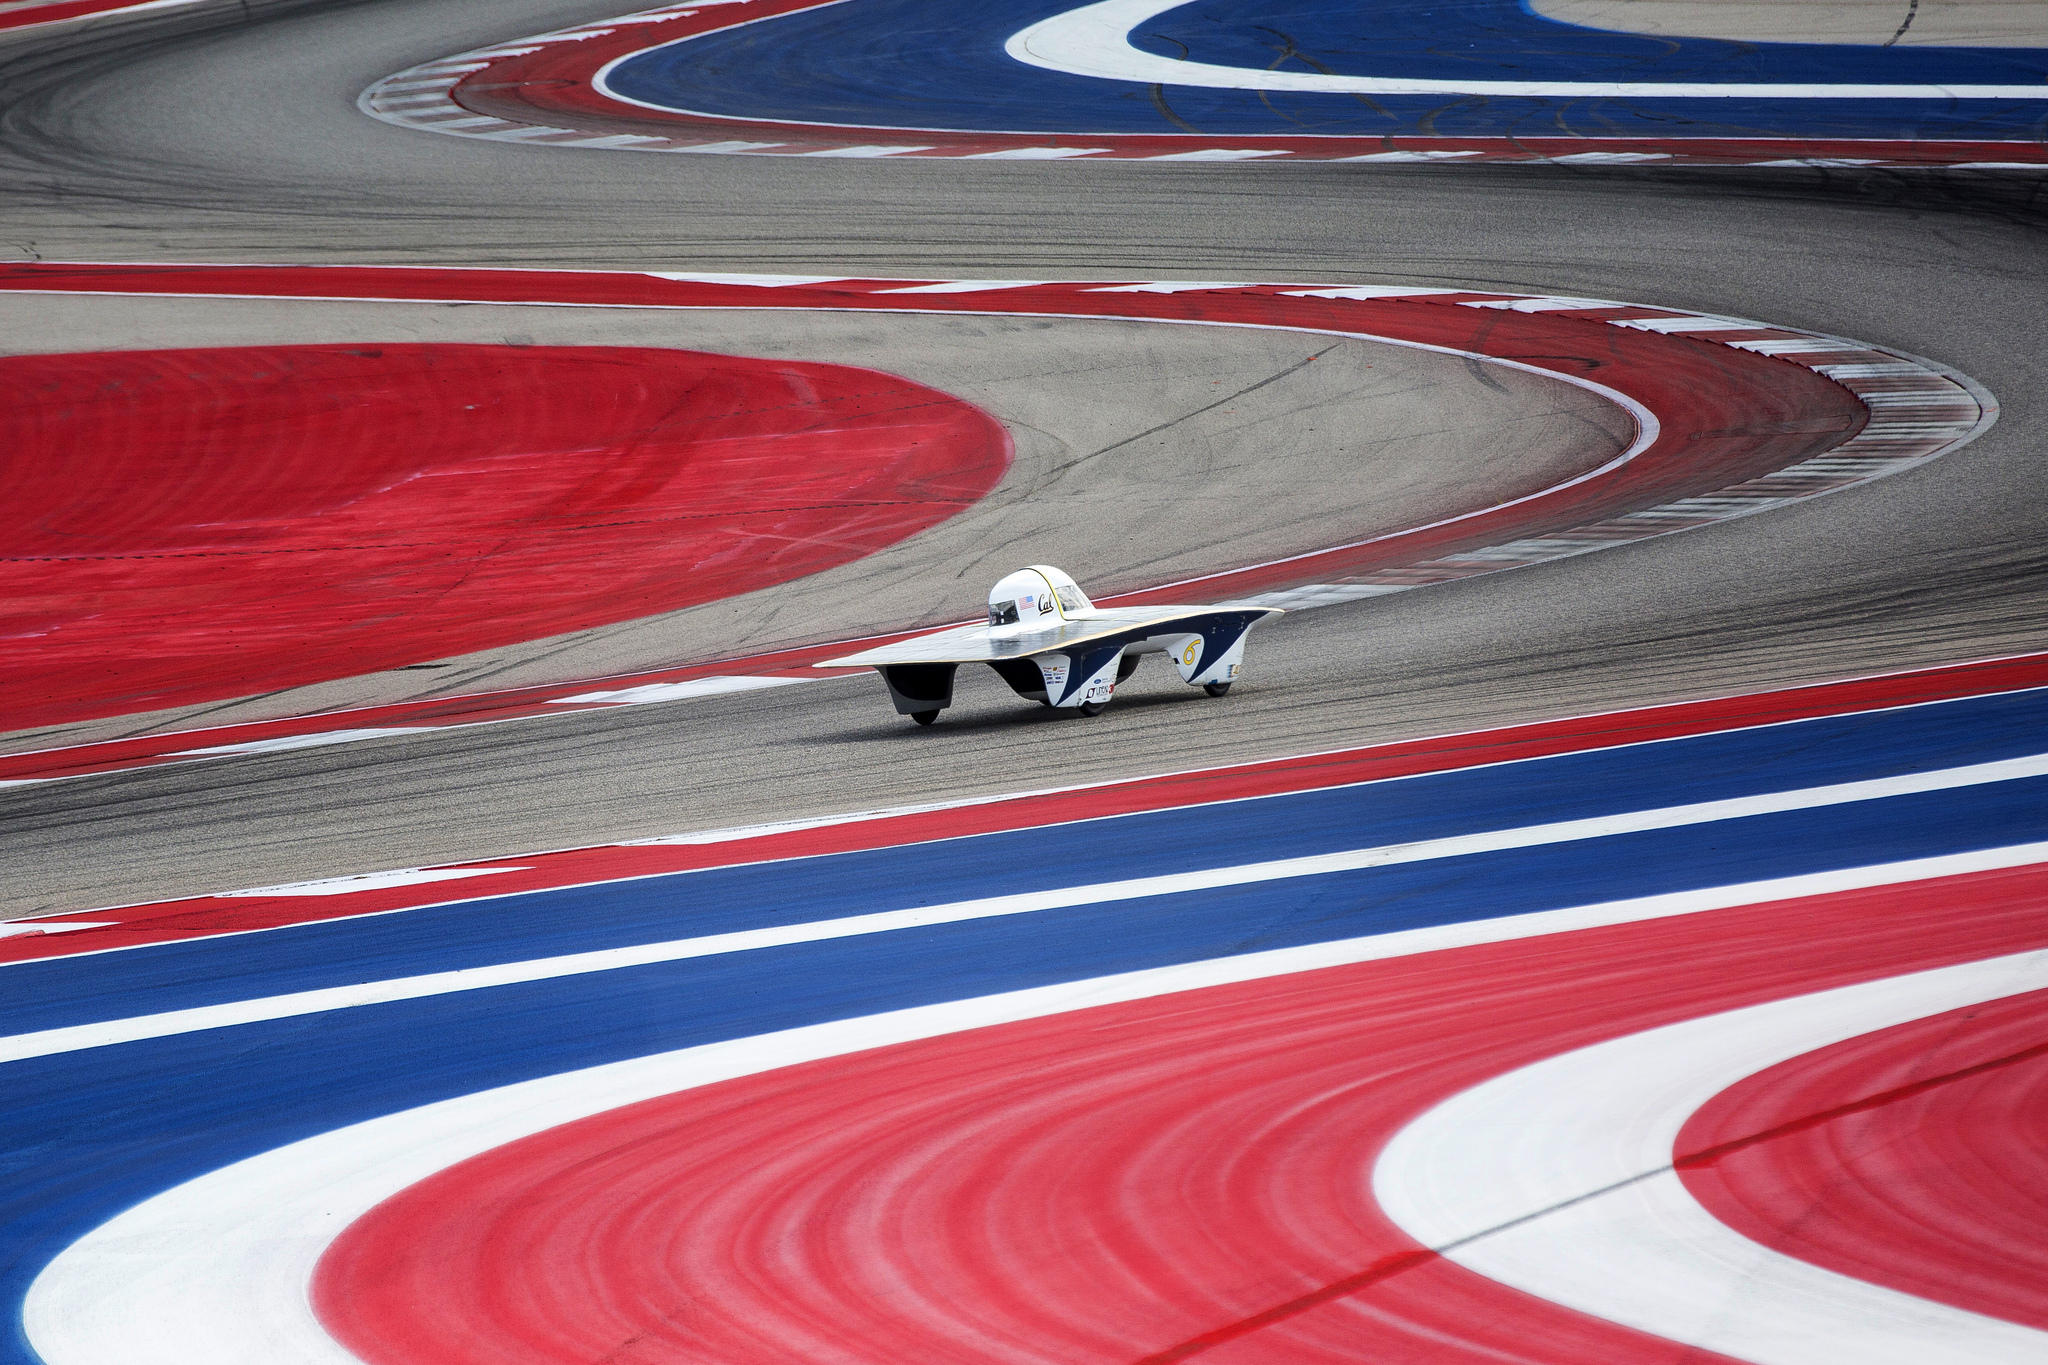 Solar Cars Heat Up Austin\'s Formula One Track | KUOW News and ...